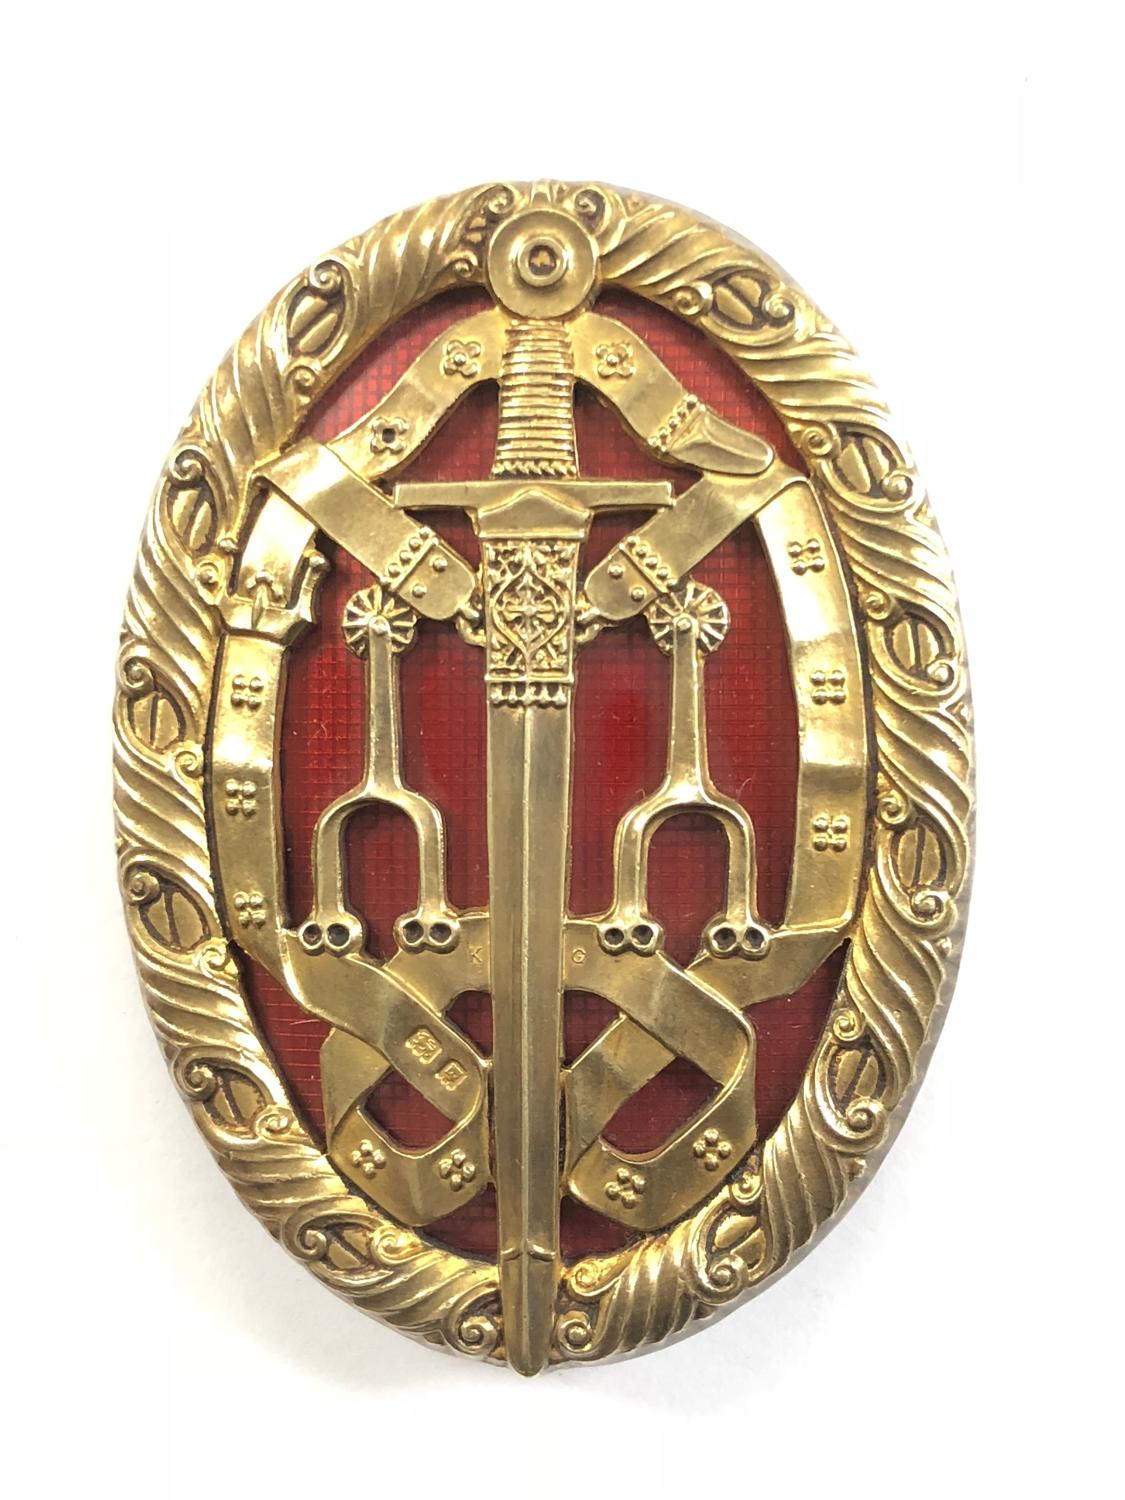 Knight Bachelor's cased 1927 Breast Badge.